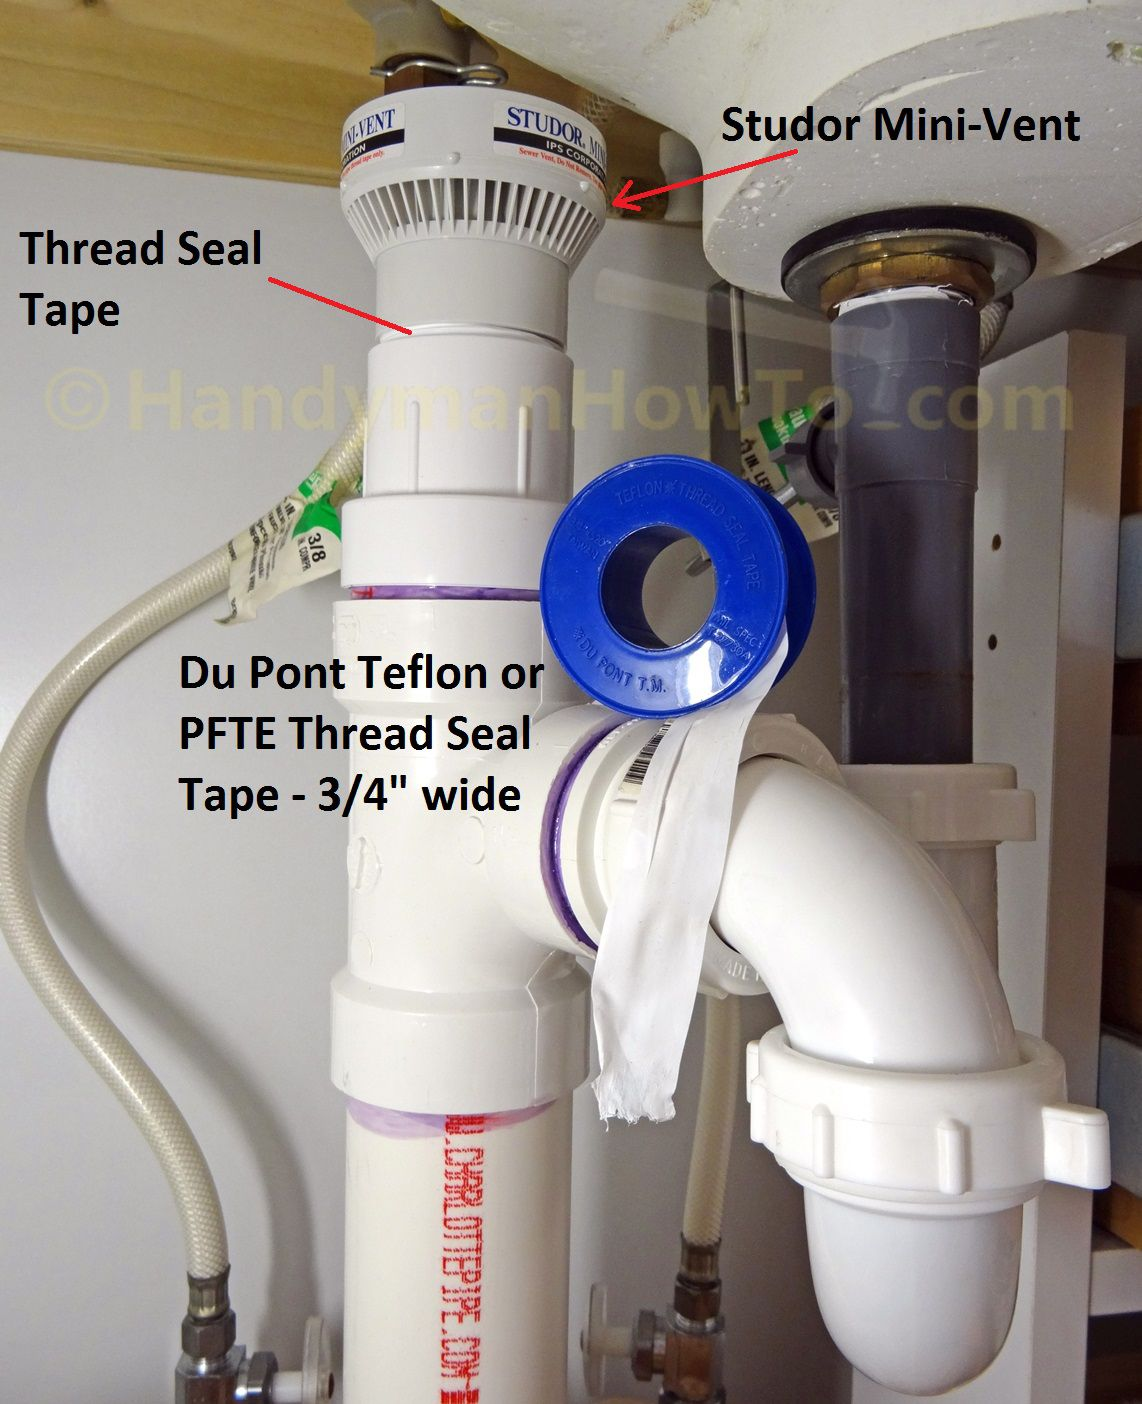 air vent for kitchen sink cabinets doors sale this project explains how to fix a sewer gas smell coming